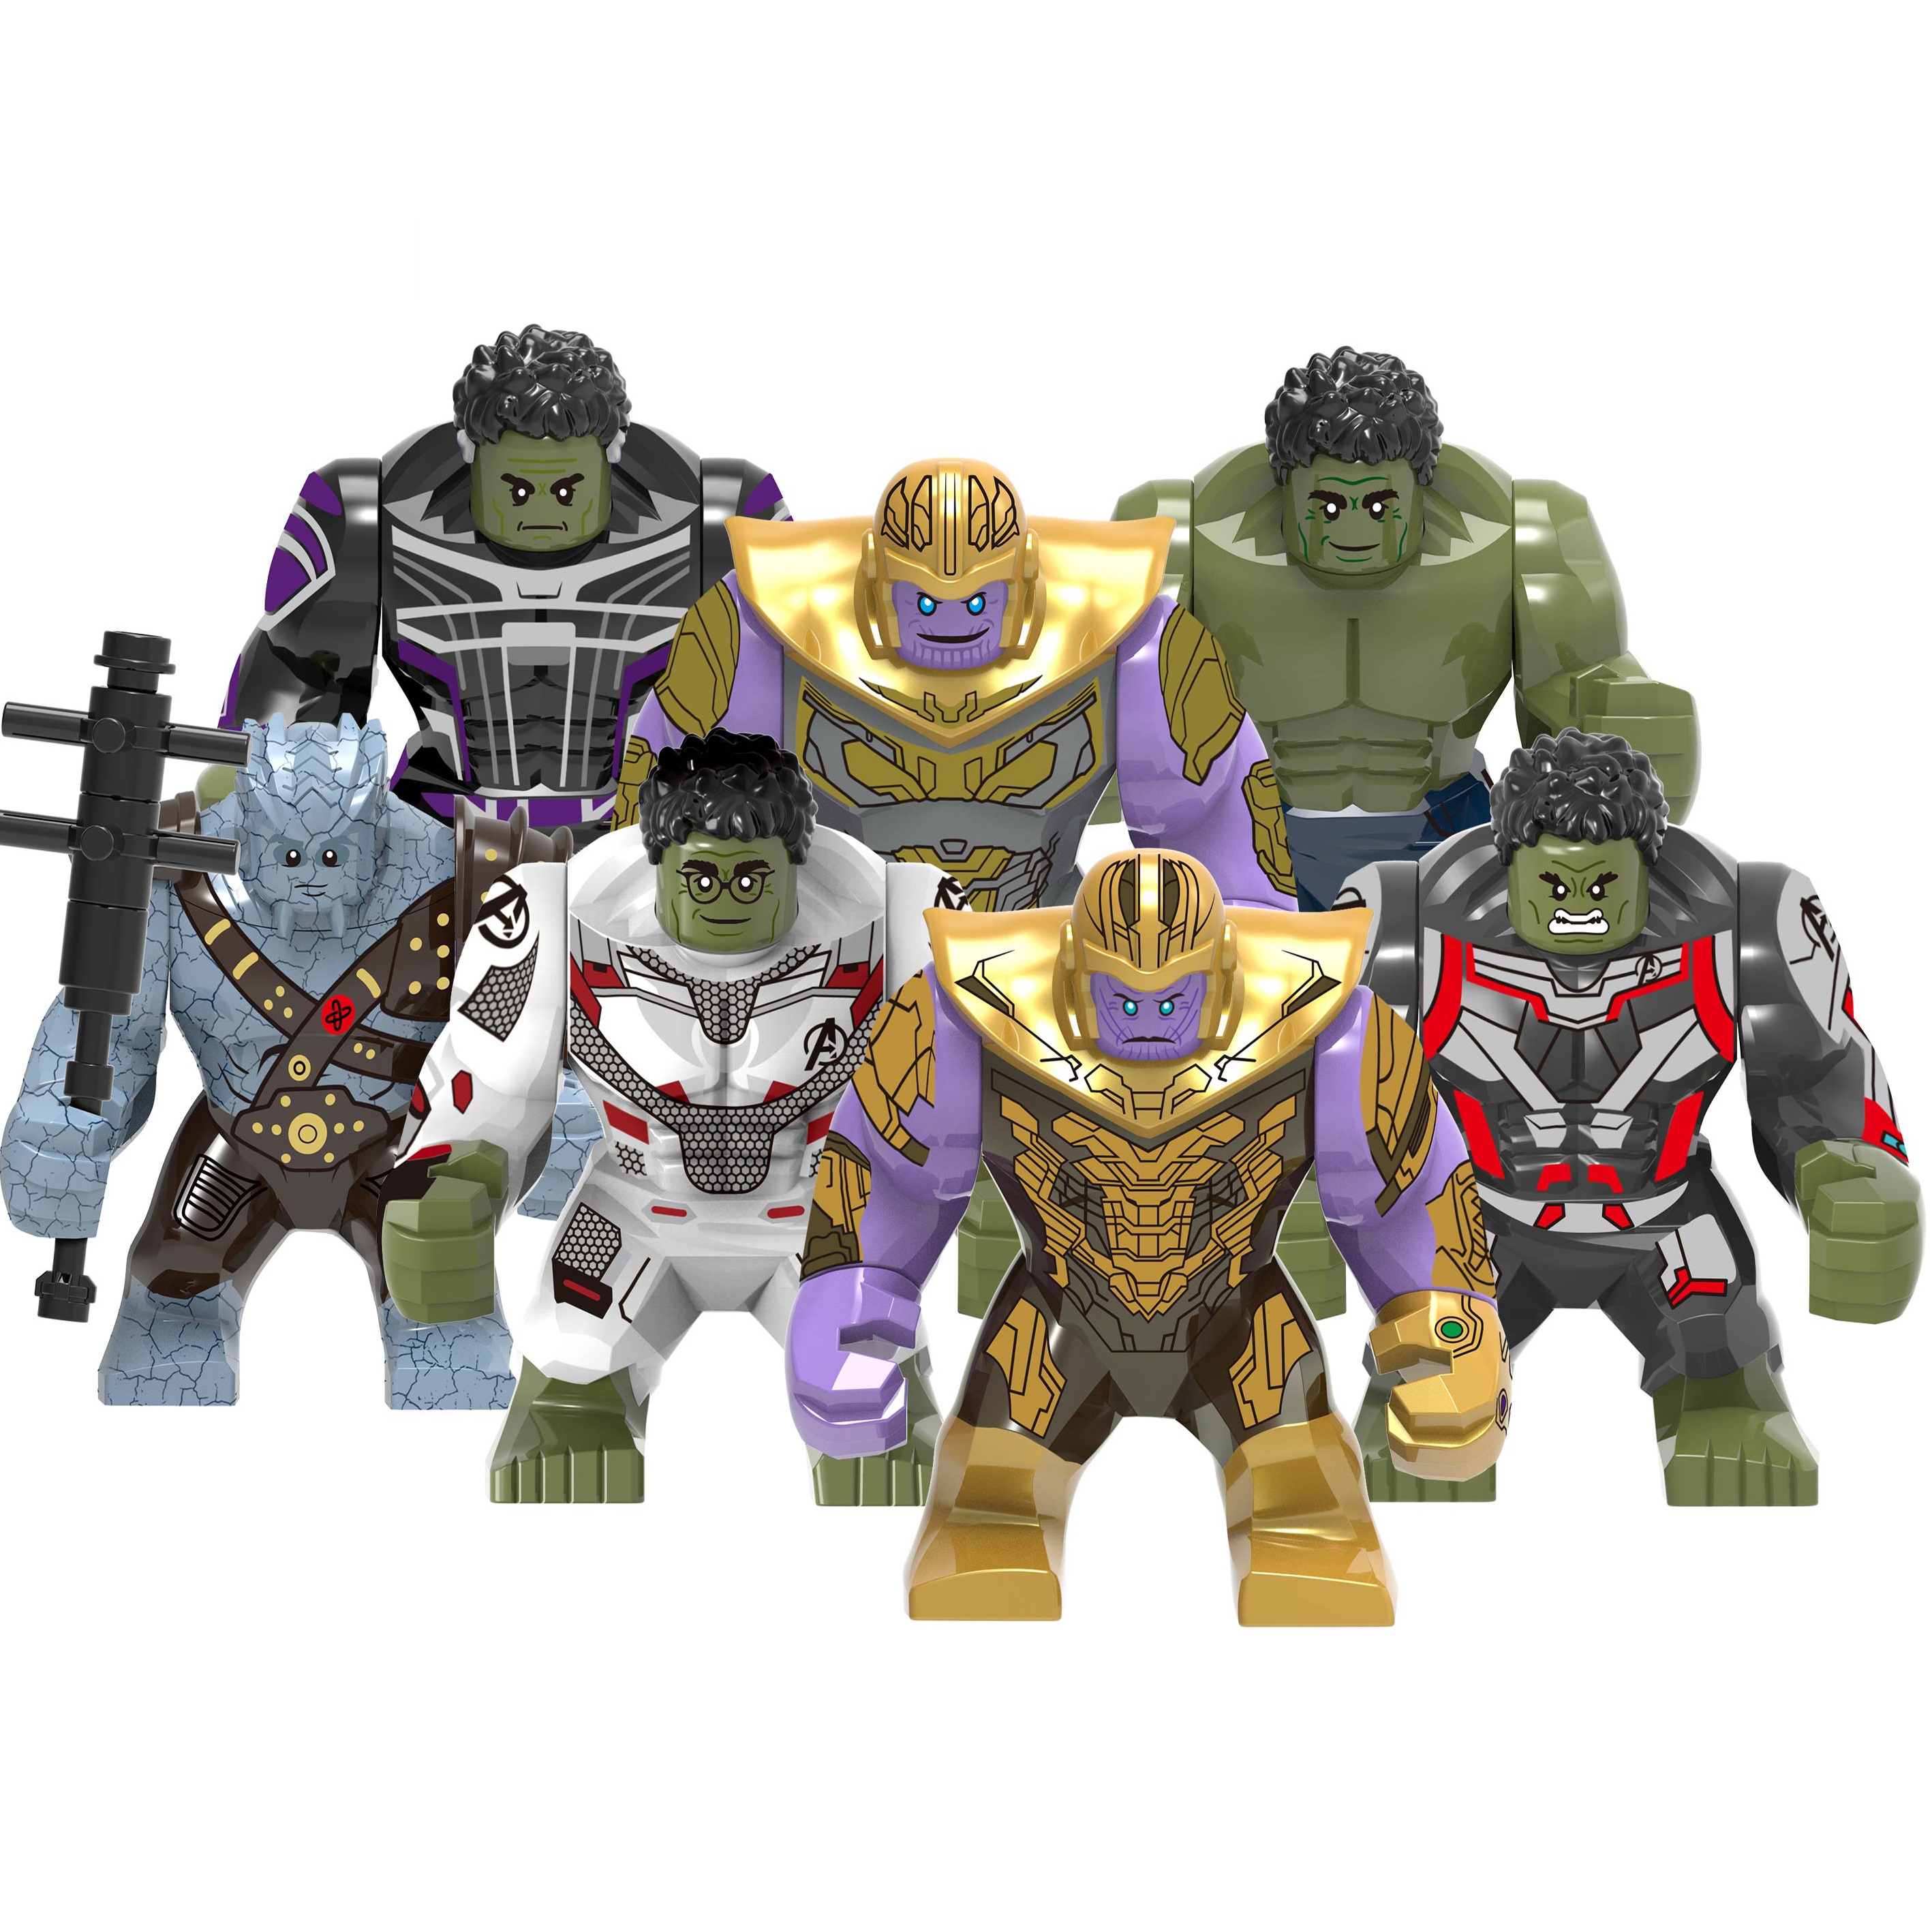 Image 3 - Big Size Hulk Marvel Avengers Endgame legoed Superheroes Hulkbuster Ironman Spiderman Thanos Building Blocks bricks Toy For Kids-in Blocks from Toys & Hobbies